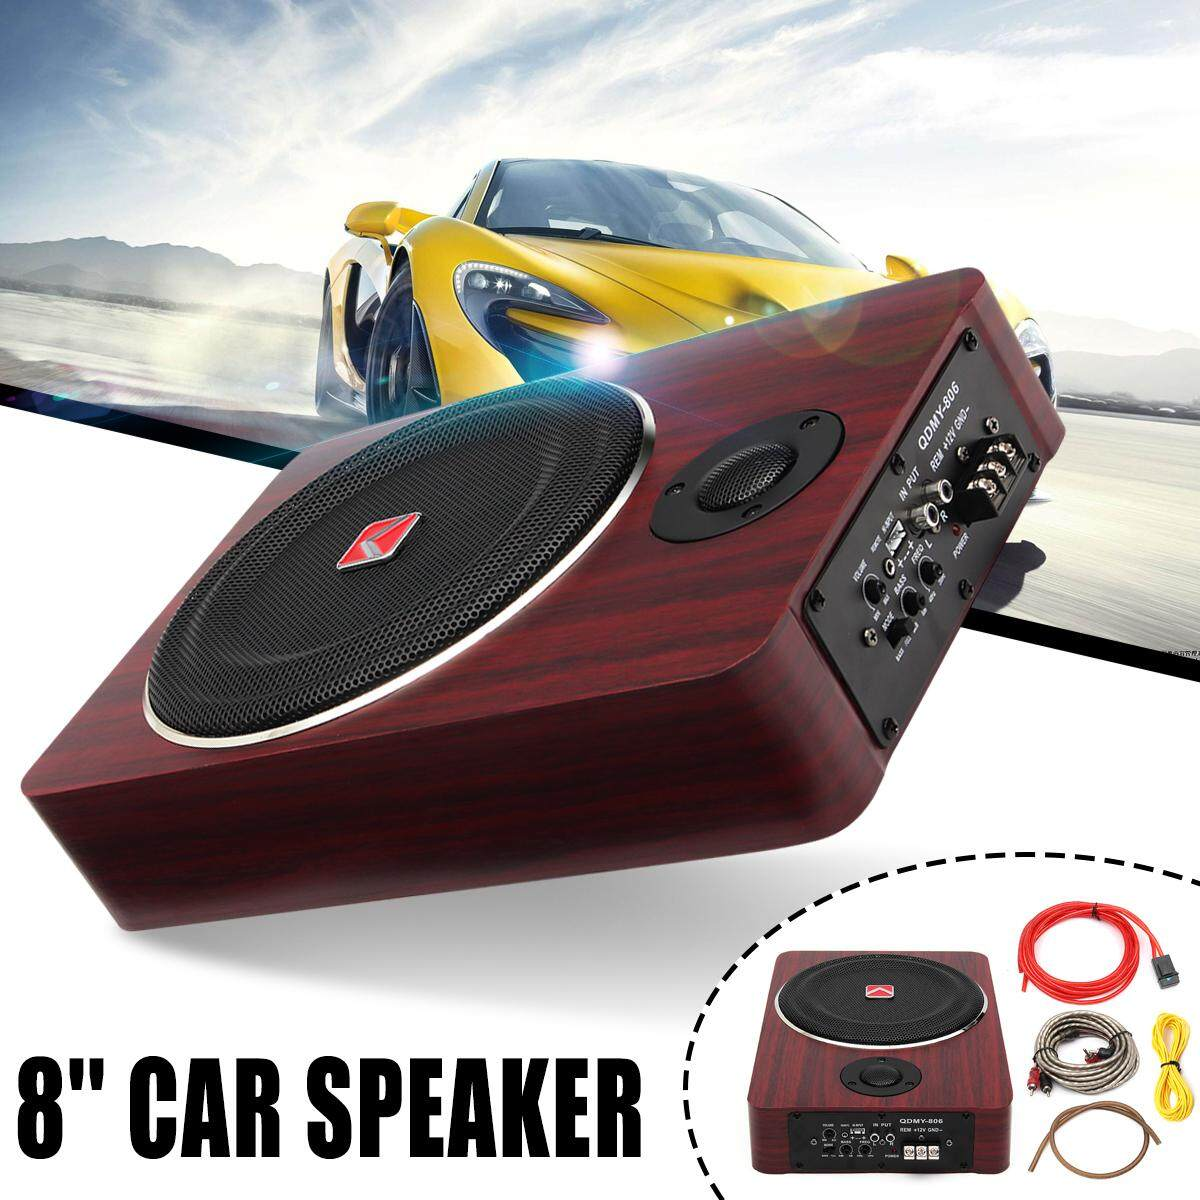 Automotive Amplifiers Buy At Best Price In Amplifier Circuit Channel Power Electronic Car Ignition 8 Inch 600w Subwoofer Speaker Active Under Seat Slim Sub Woofer Amp Super Bass